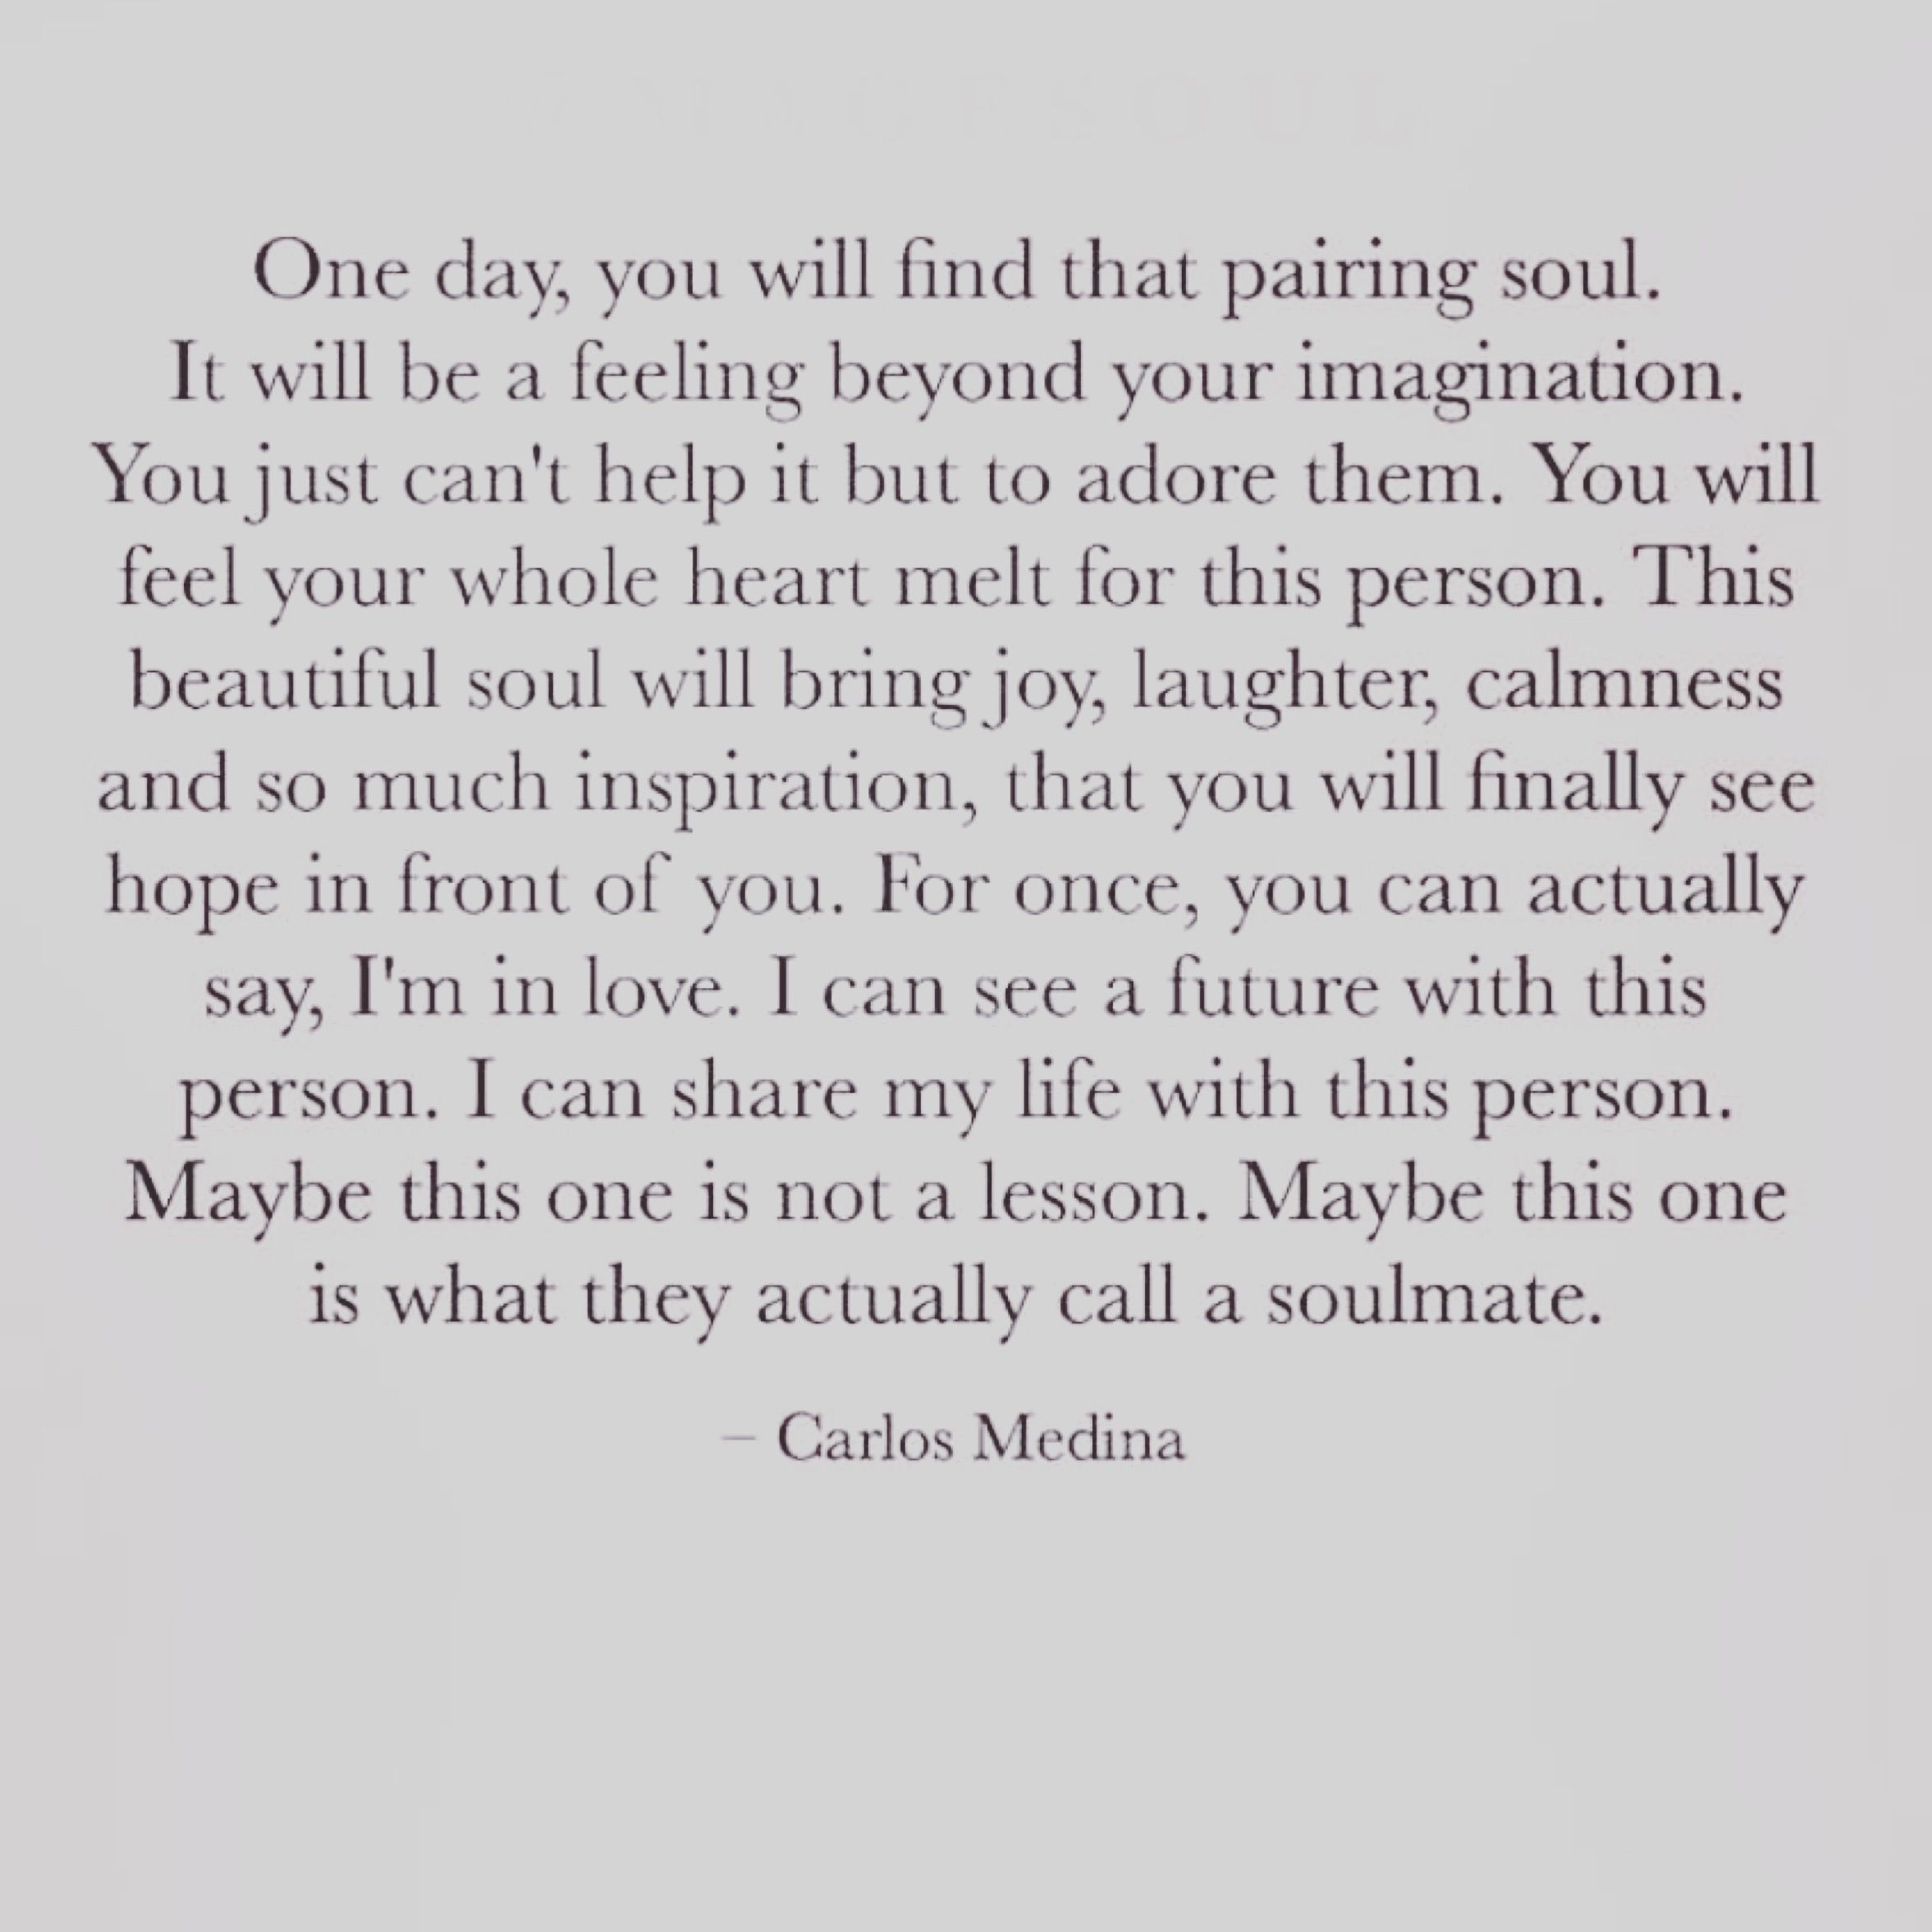 Love My Man Quotes Beauteous Carlos Medina Quote #words #soulmate #soul  Me And You  Pinterest